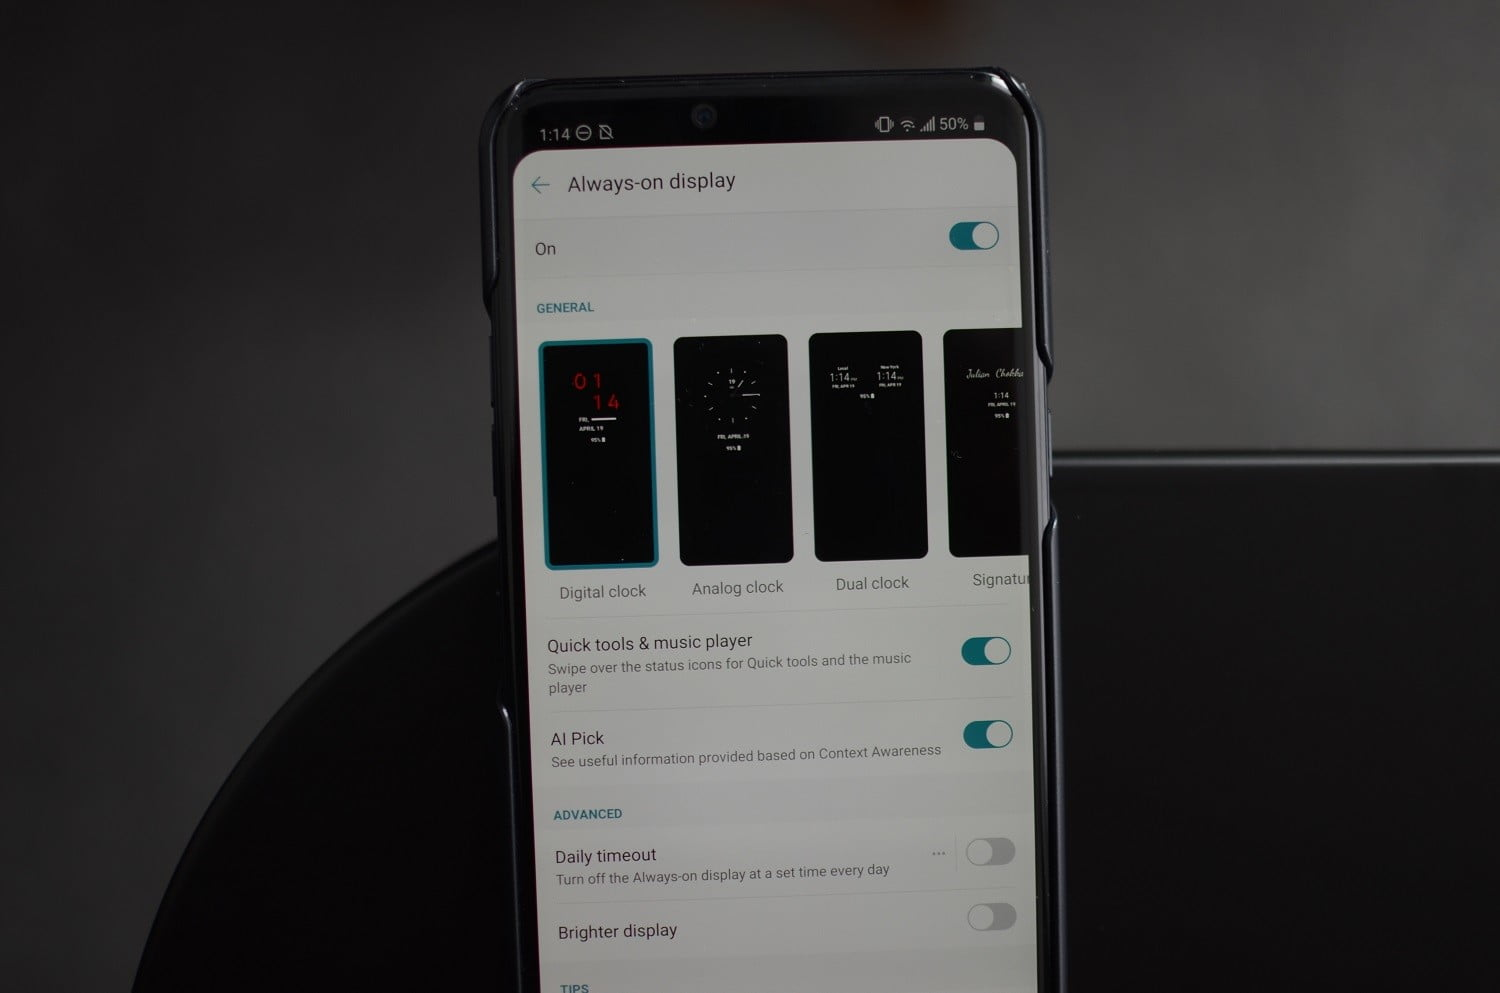 LG G8 ThinQ: 11 Key Settings To Change On Your New Phone | Digital